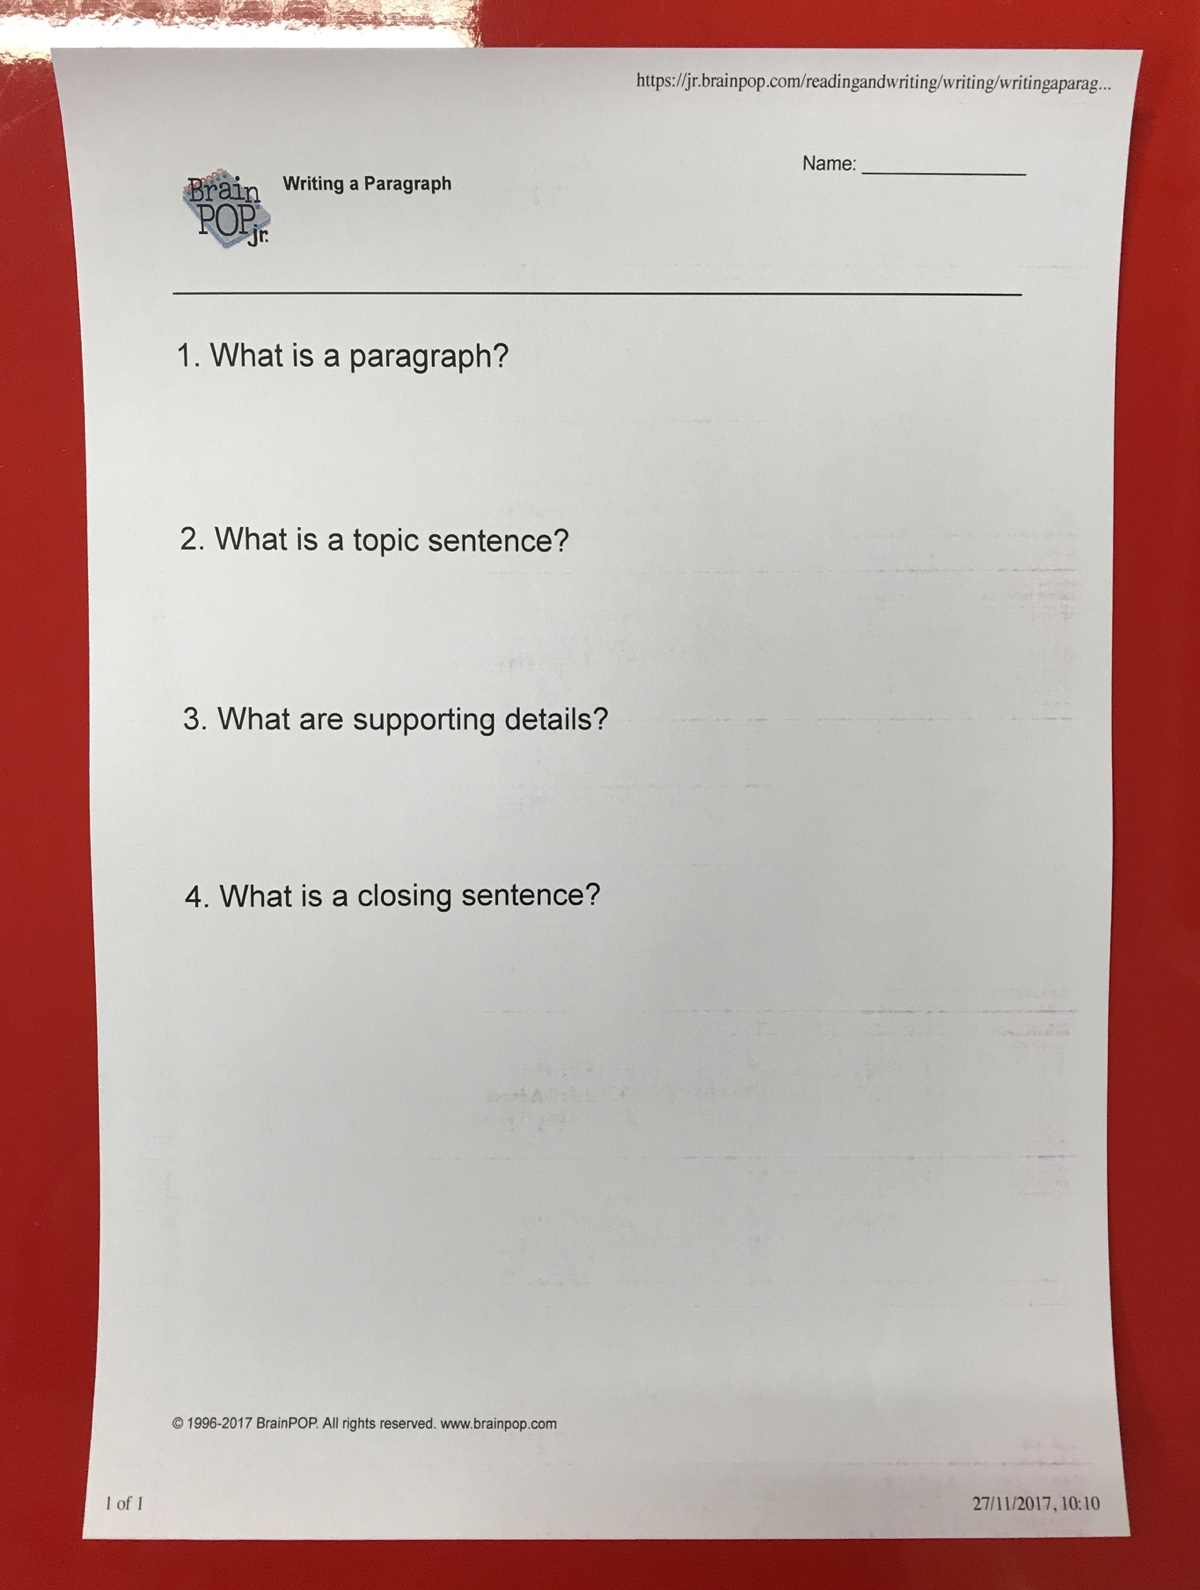 Print questions in advance to scaffold learning - Hit the print button underneath the Notebook to print a PDF file of all the questions from the movie. You can use this as a summation/Q&A sheet for pupils, or just as an aide memoir for your lesson.